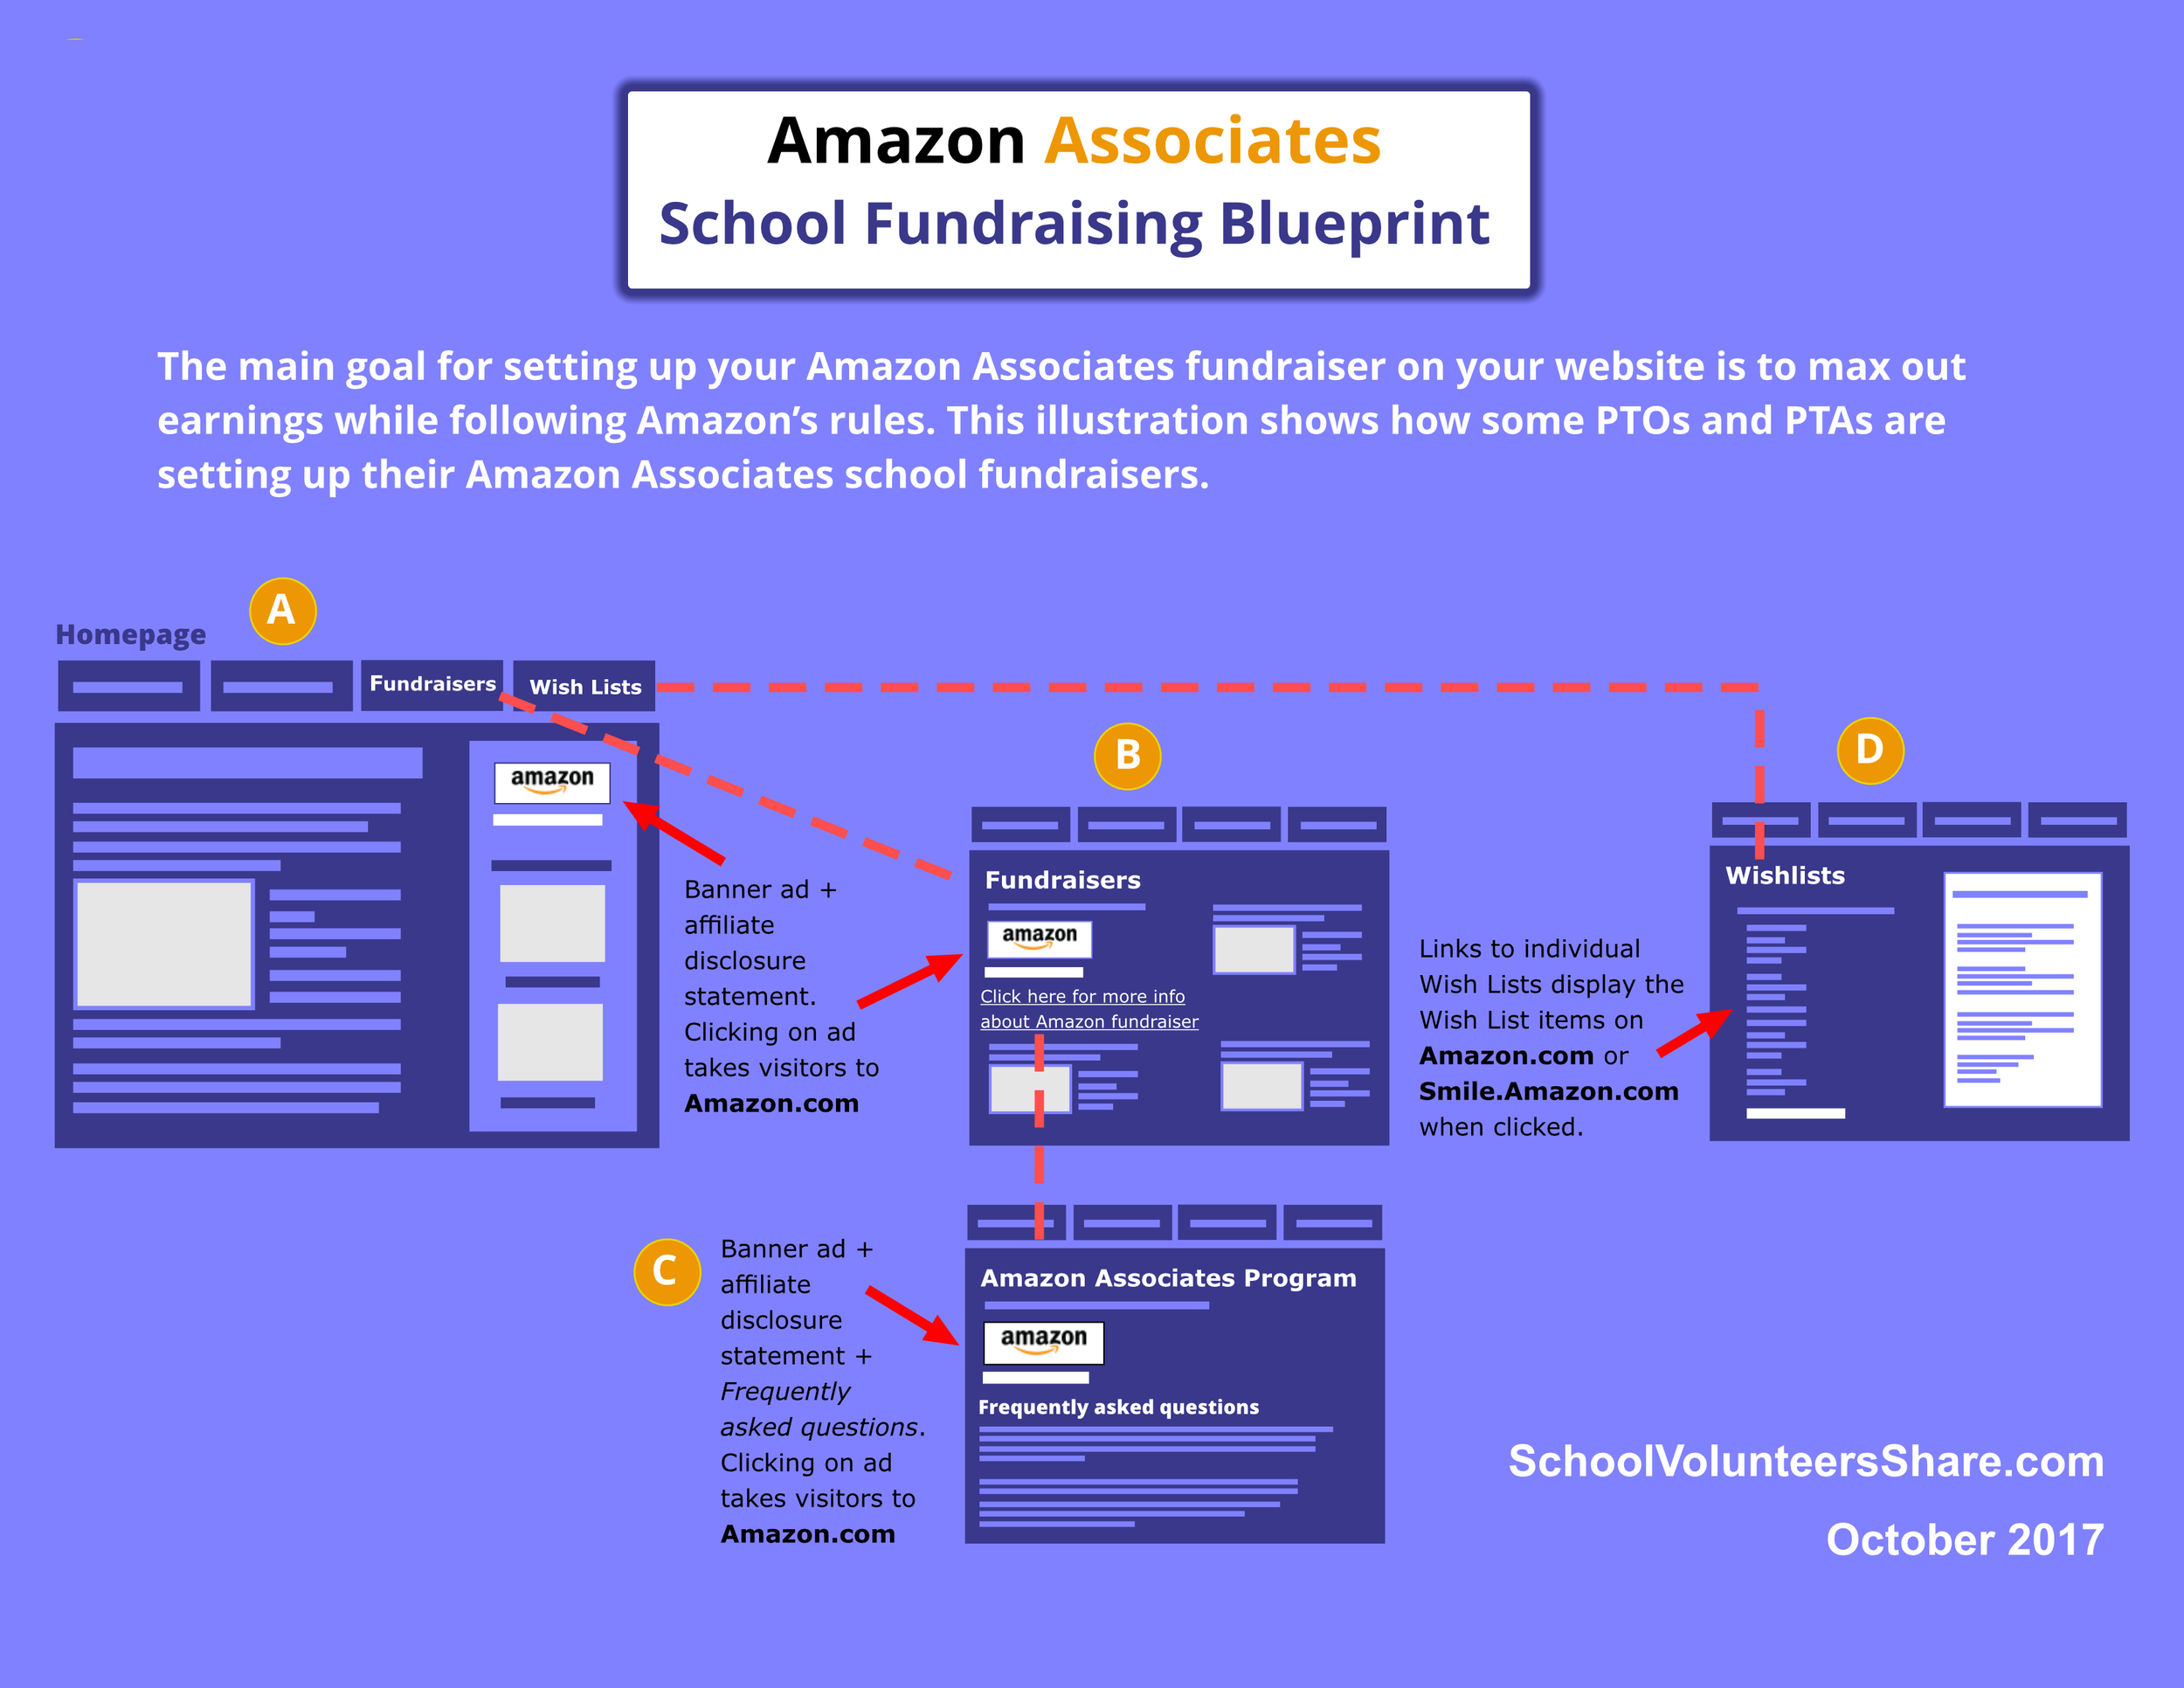 The main goal for setting up your Amazon Associates fundraiser on your website is to max out earnings while following Amazon's rules. This illustration shows how some PTOs and PTAs are setting up their Amazon Associates school fundraisers.